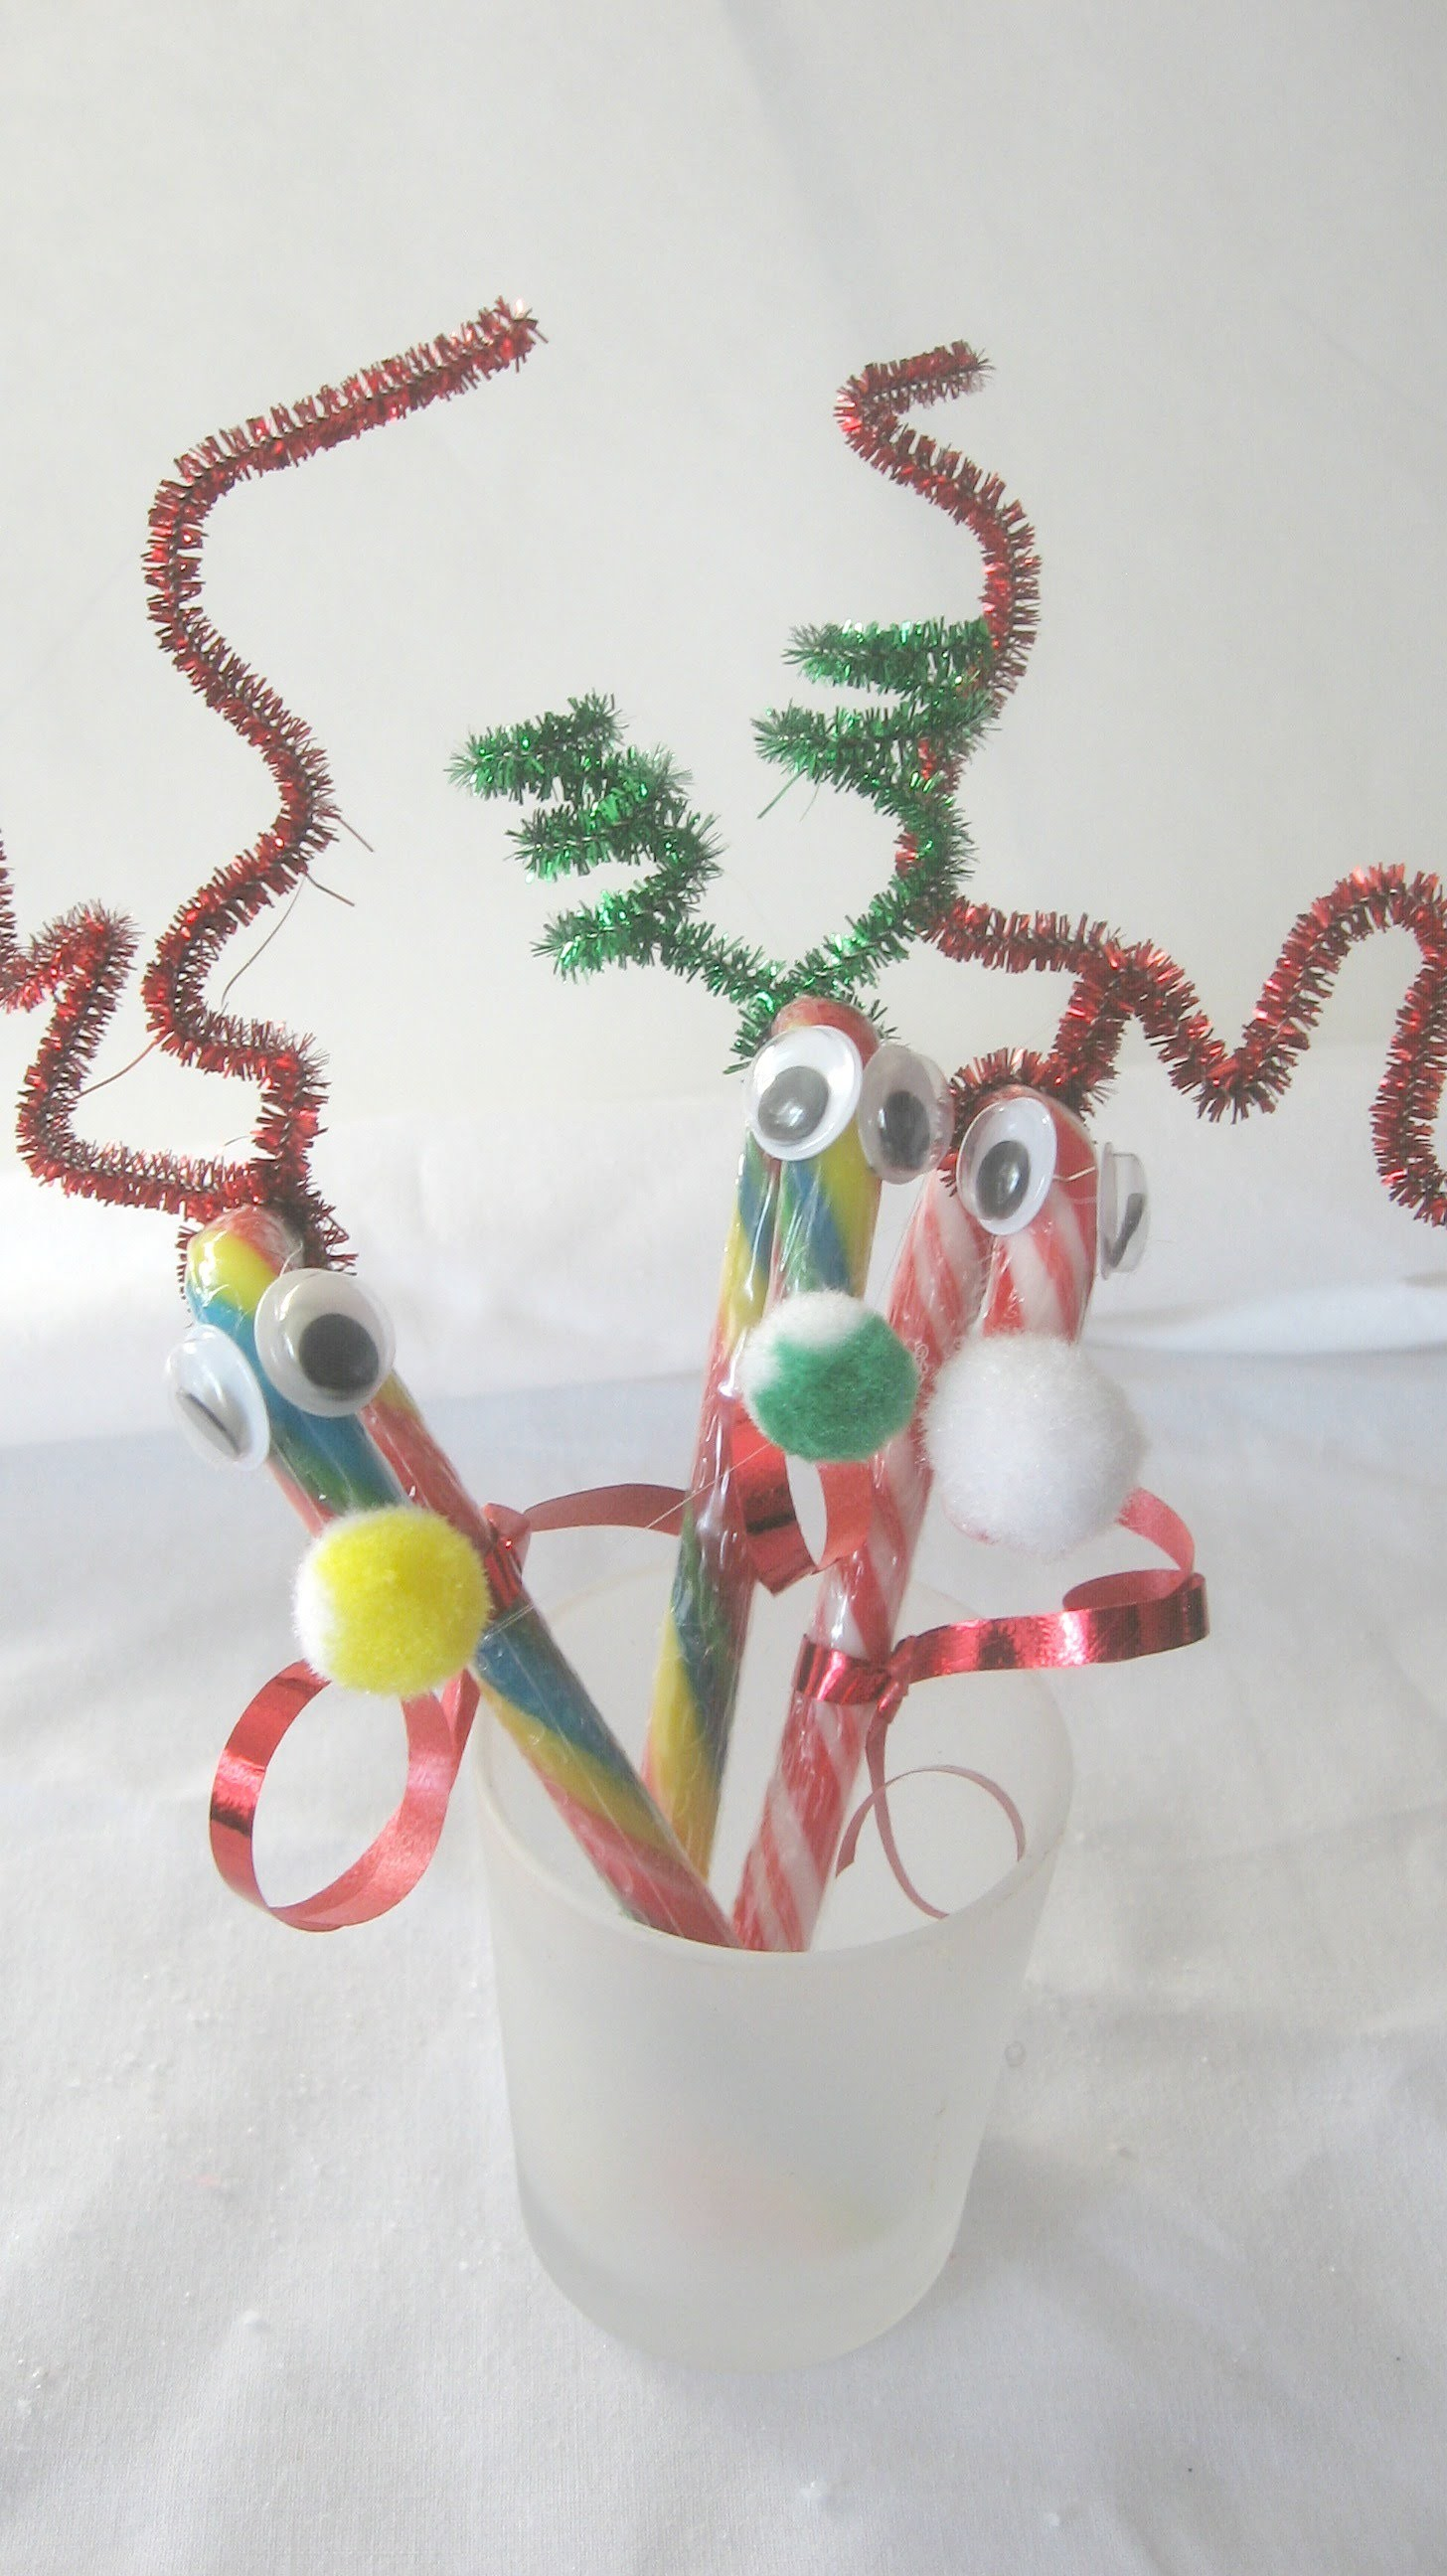 DIY.How to make Candy Cane Reindeers Tutorial. Candy Cane Reindeer Ornament